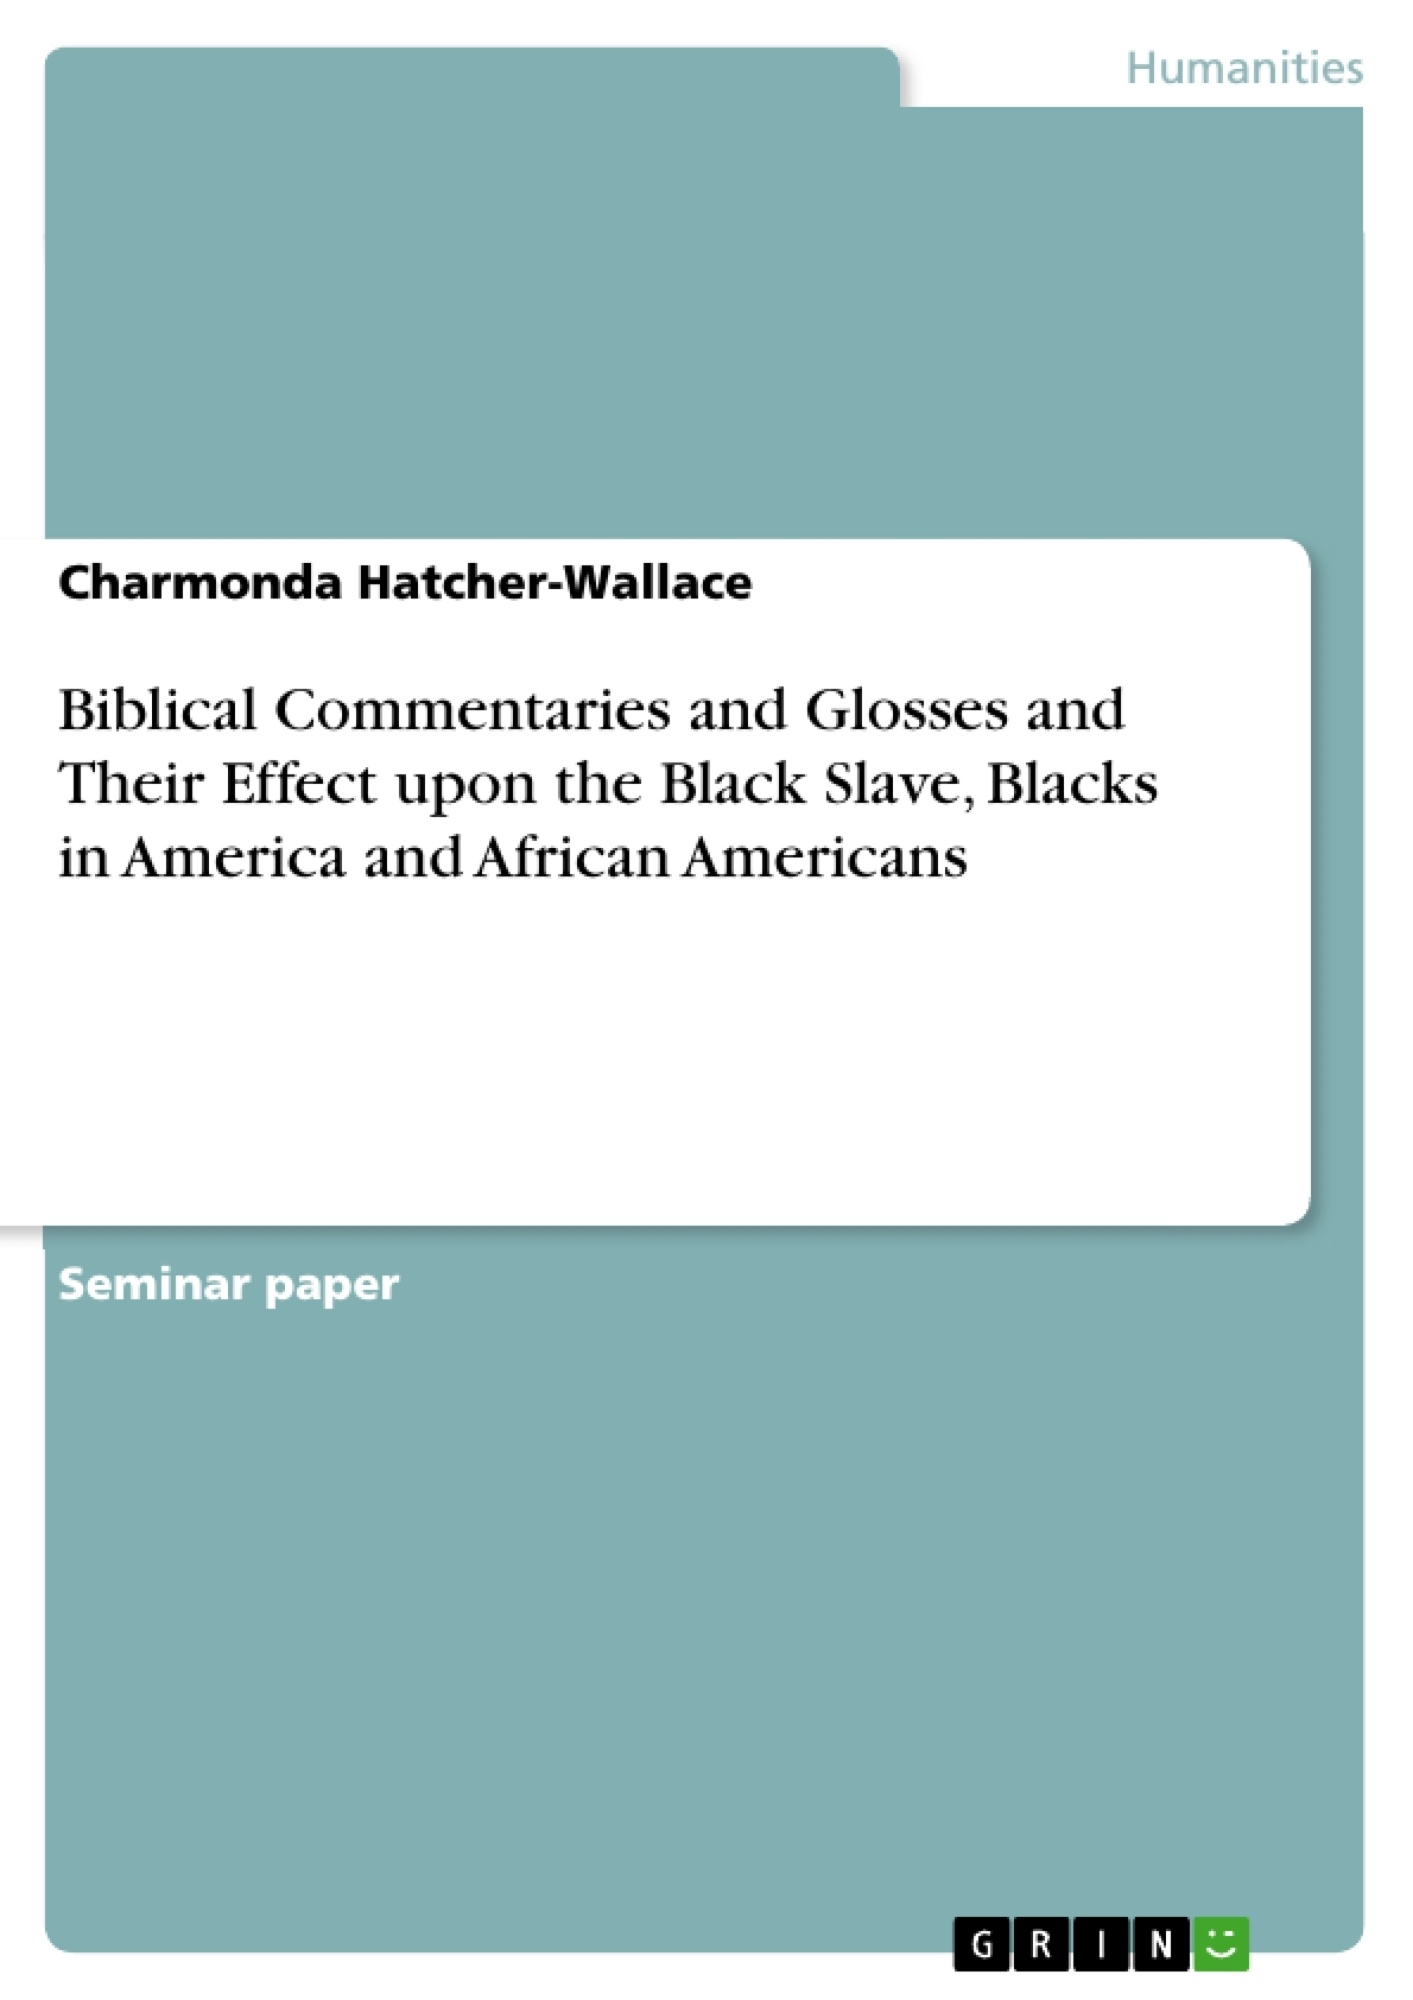 Title: Biblical Commentaries and Glosses and Their Effect upon the Black Slave, Blacks in America and African Americans